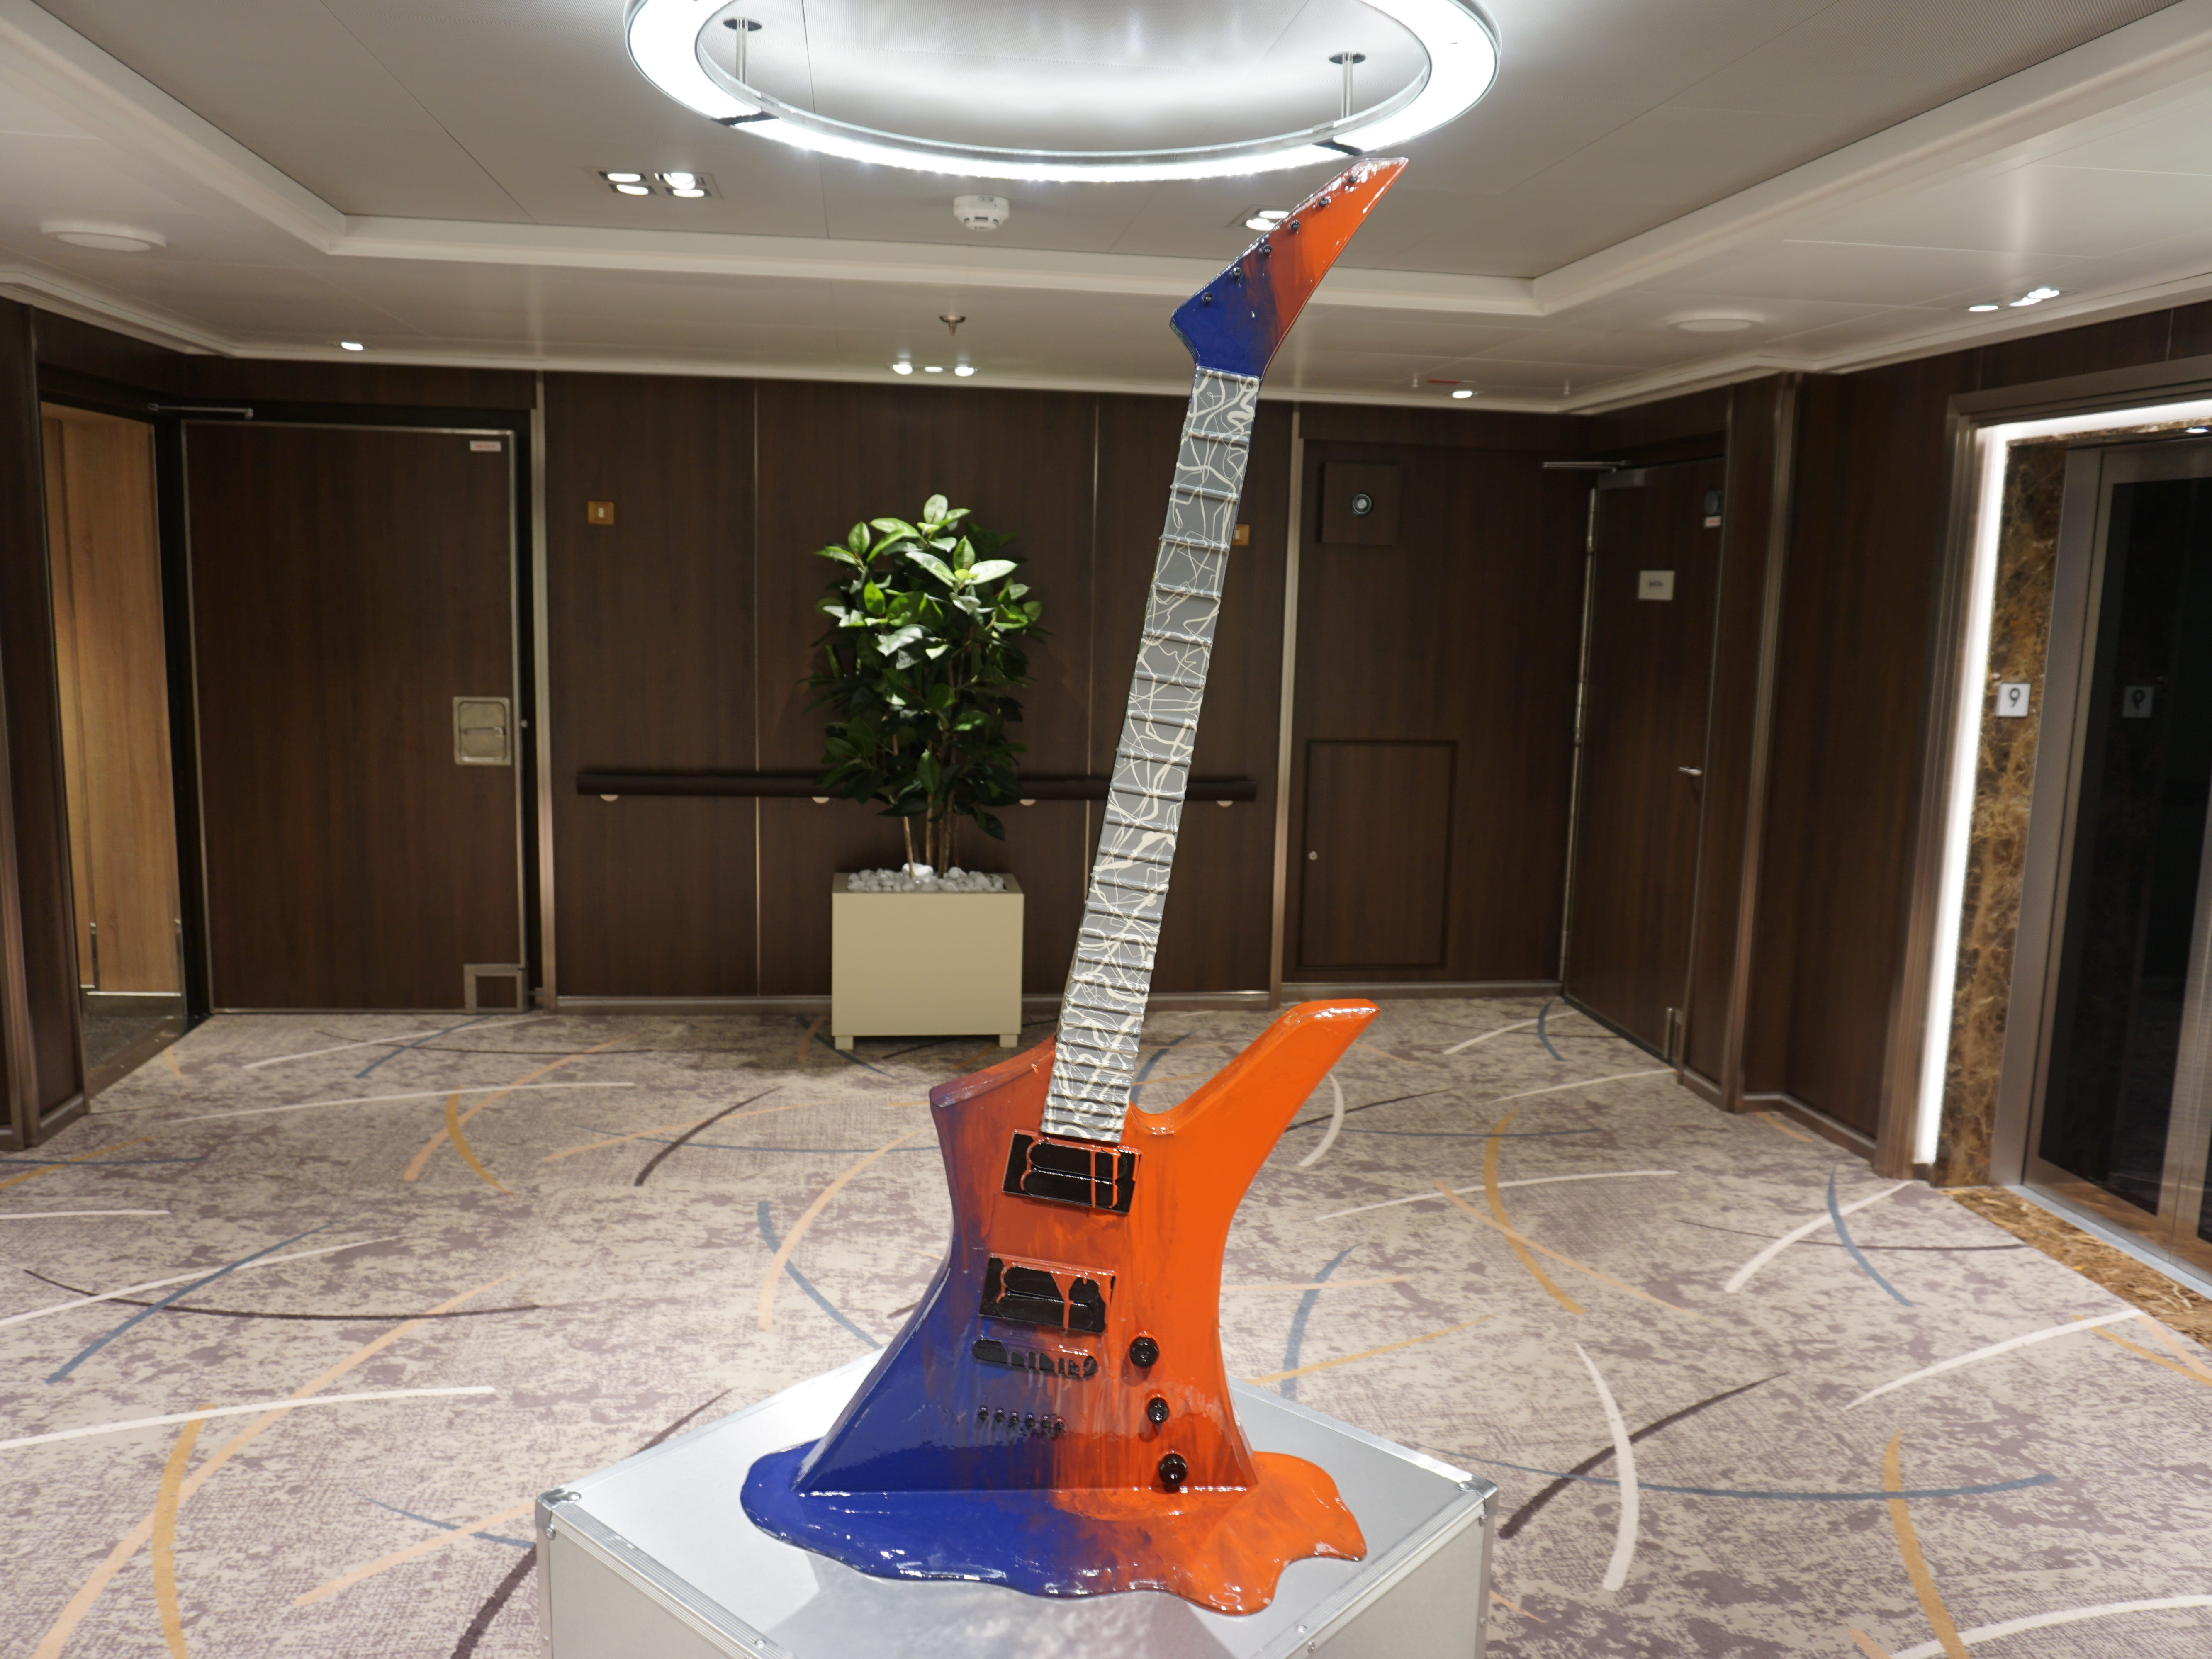 Music-themed art specifically curated for the Nieuw Statendam can be found in just about every vestibule, nook, cranny and stairtower landing.